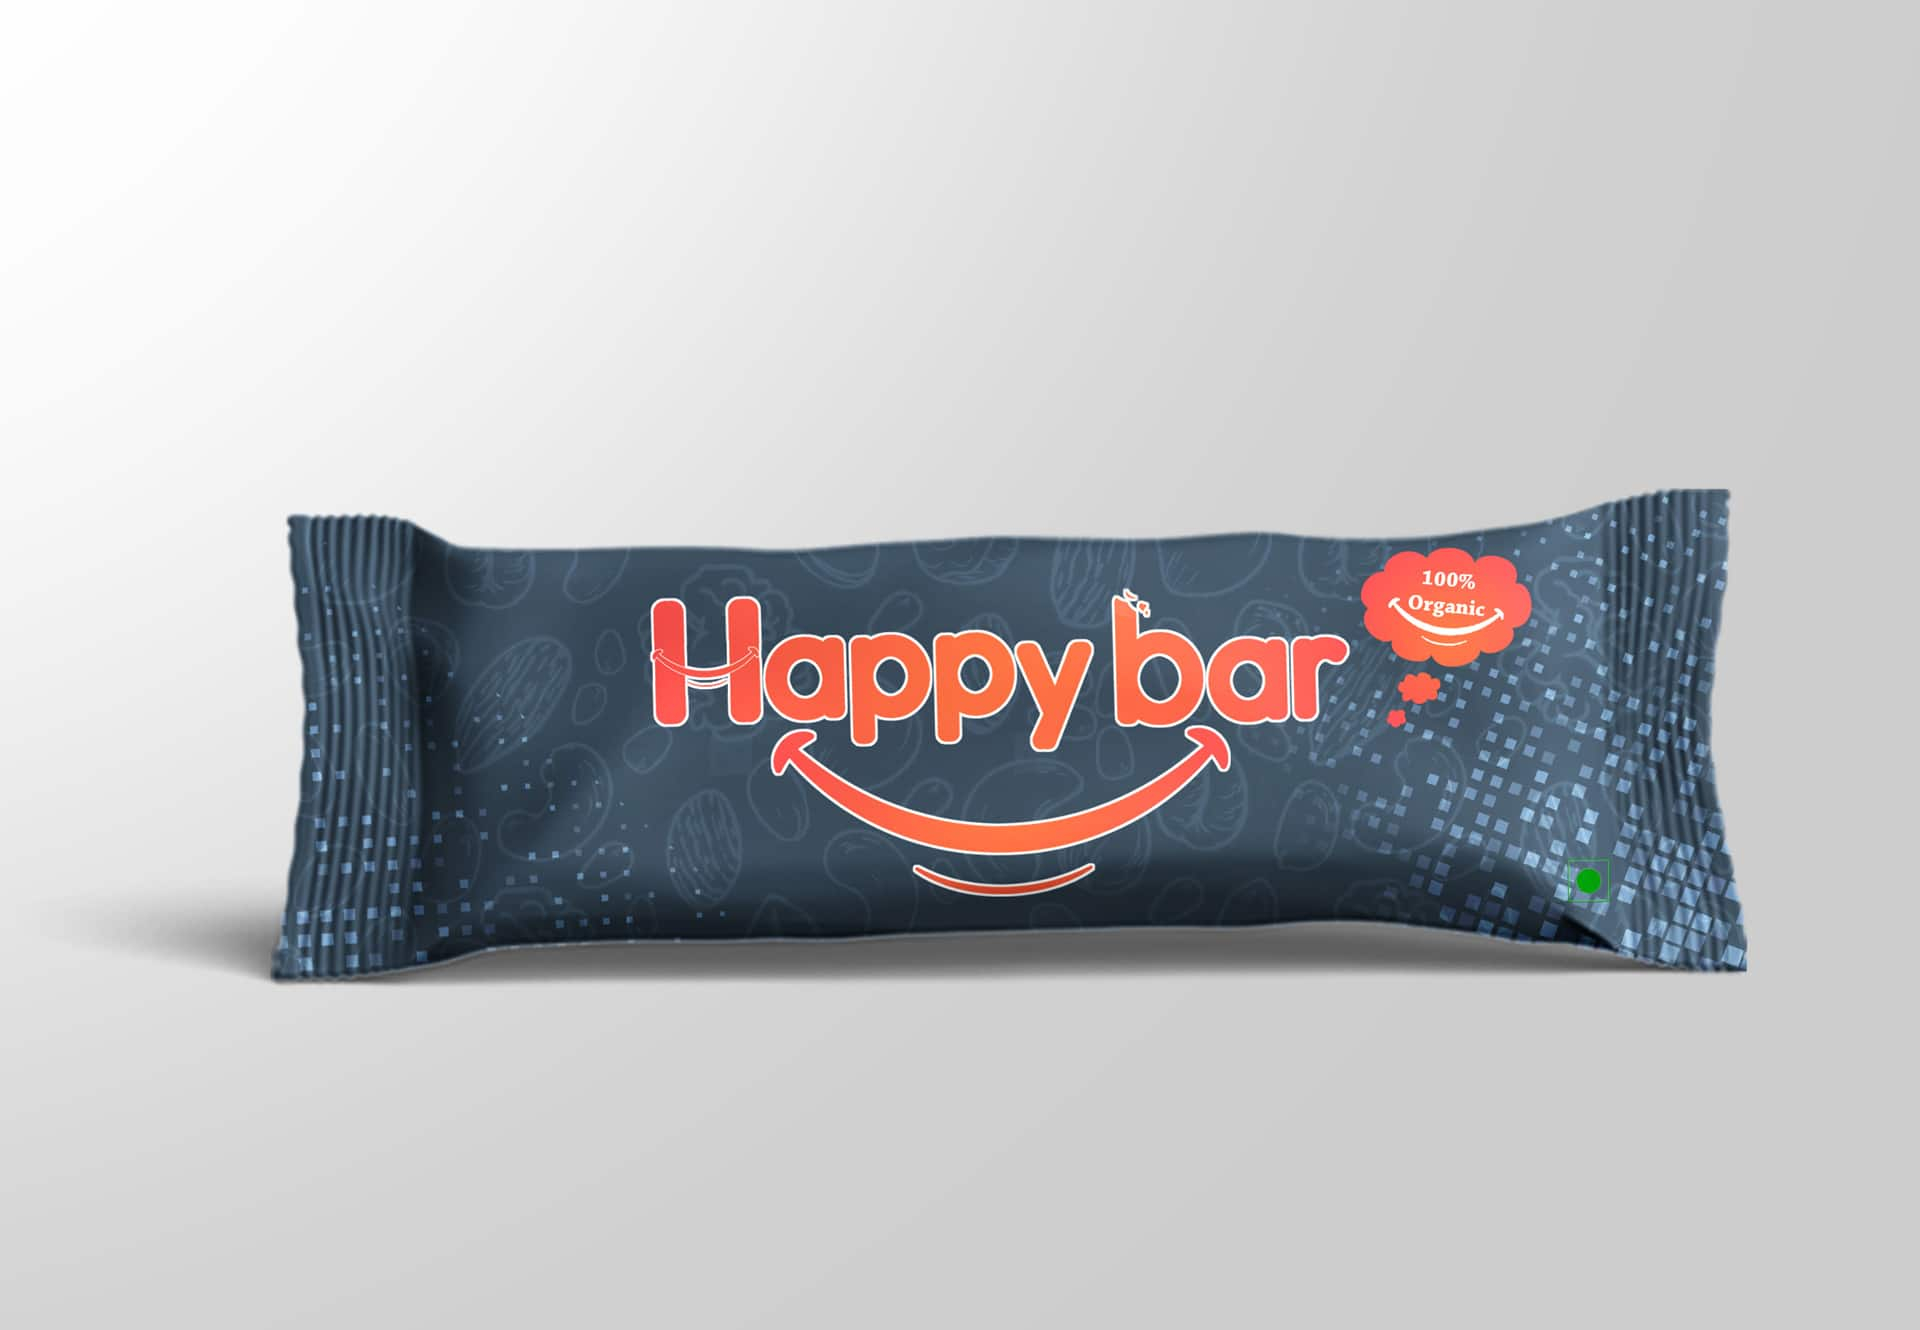 Strawberry-Branding-happy-bar-product-packaging-designing (3)